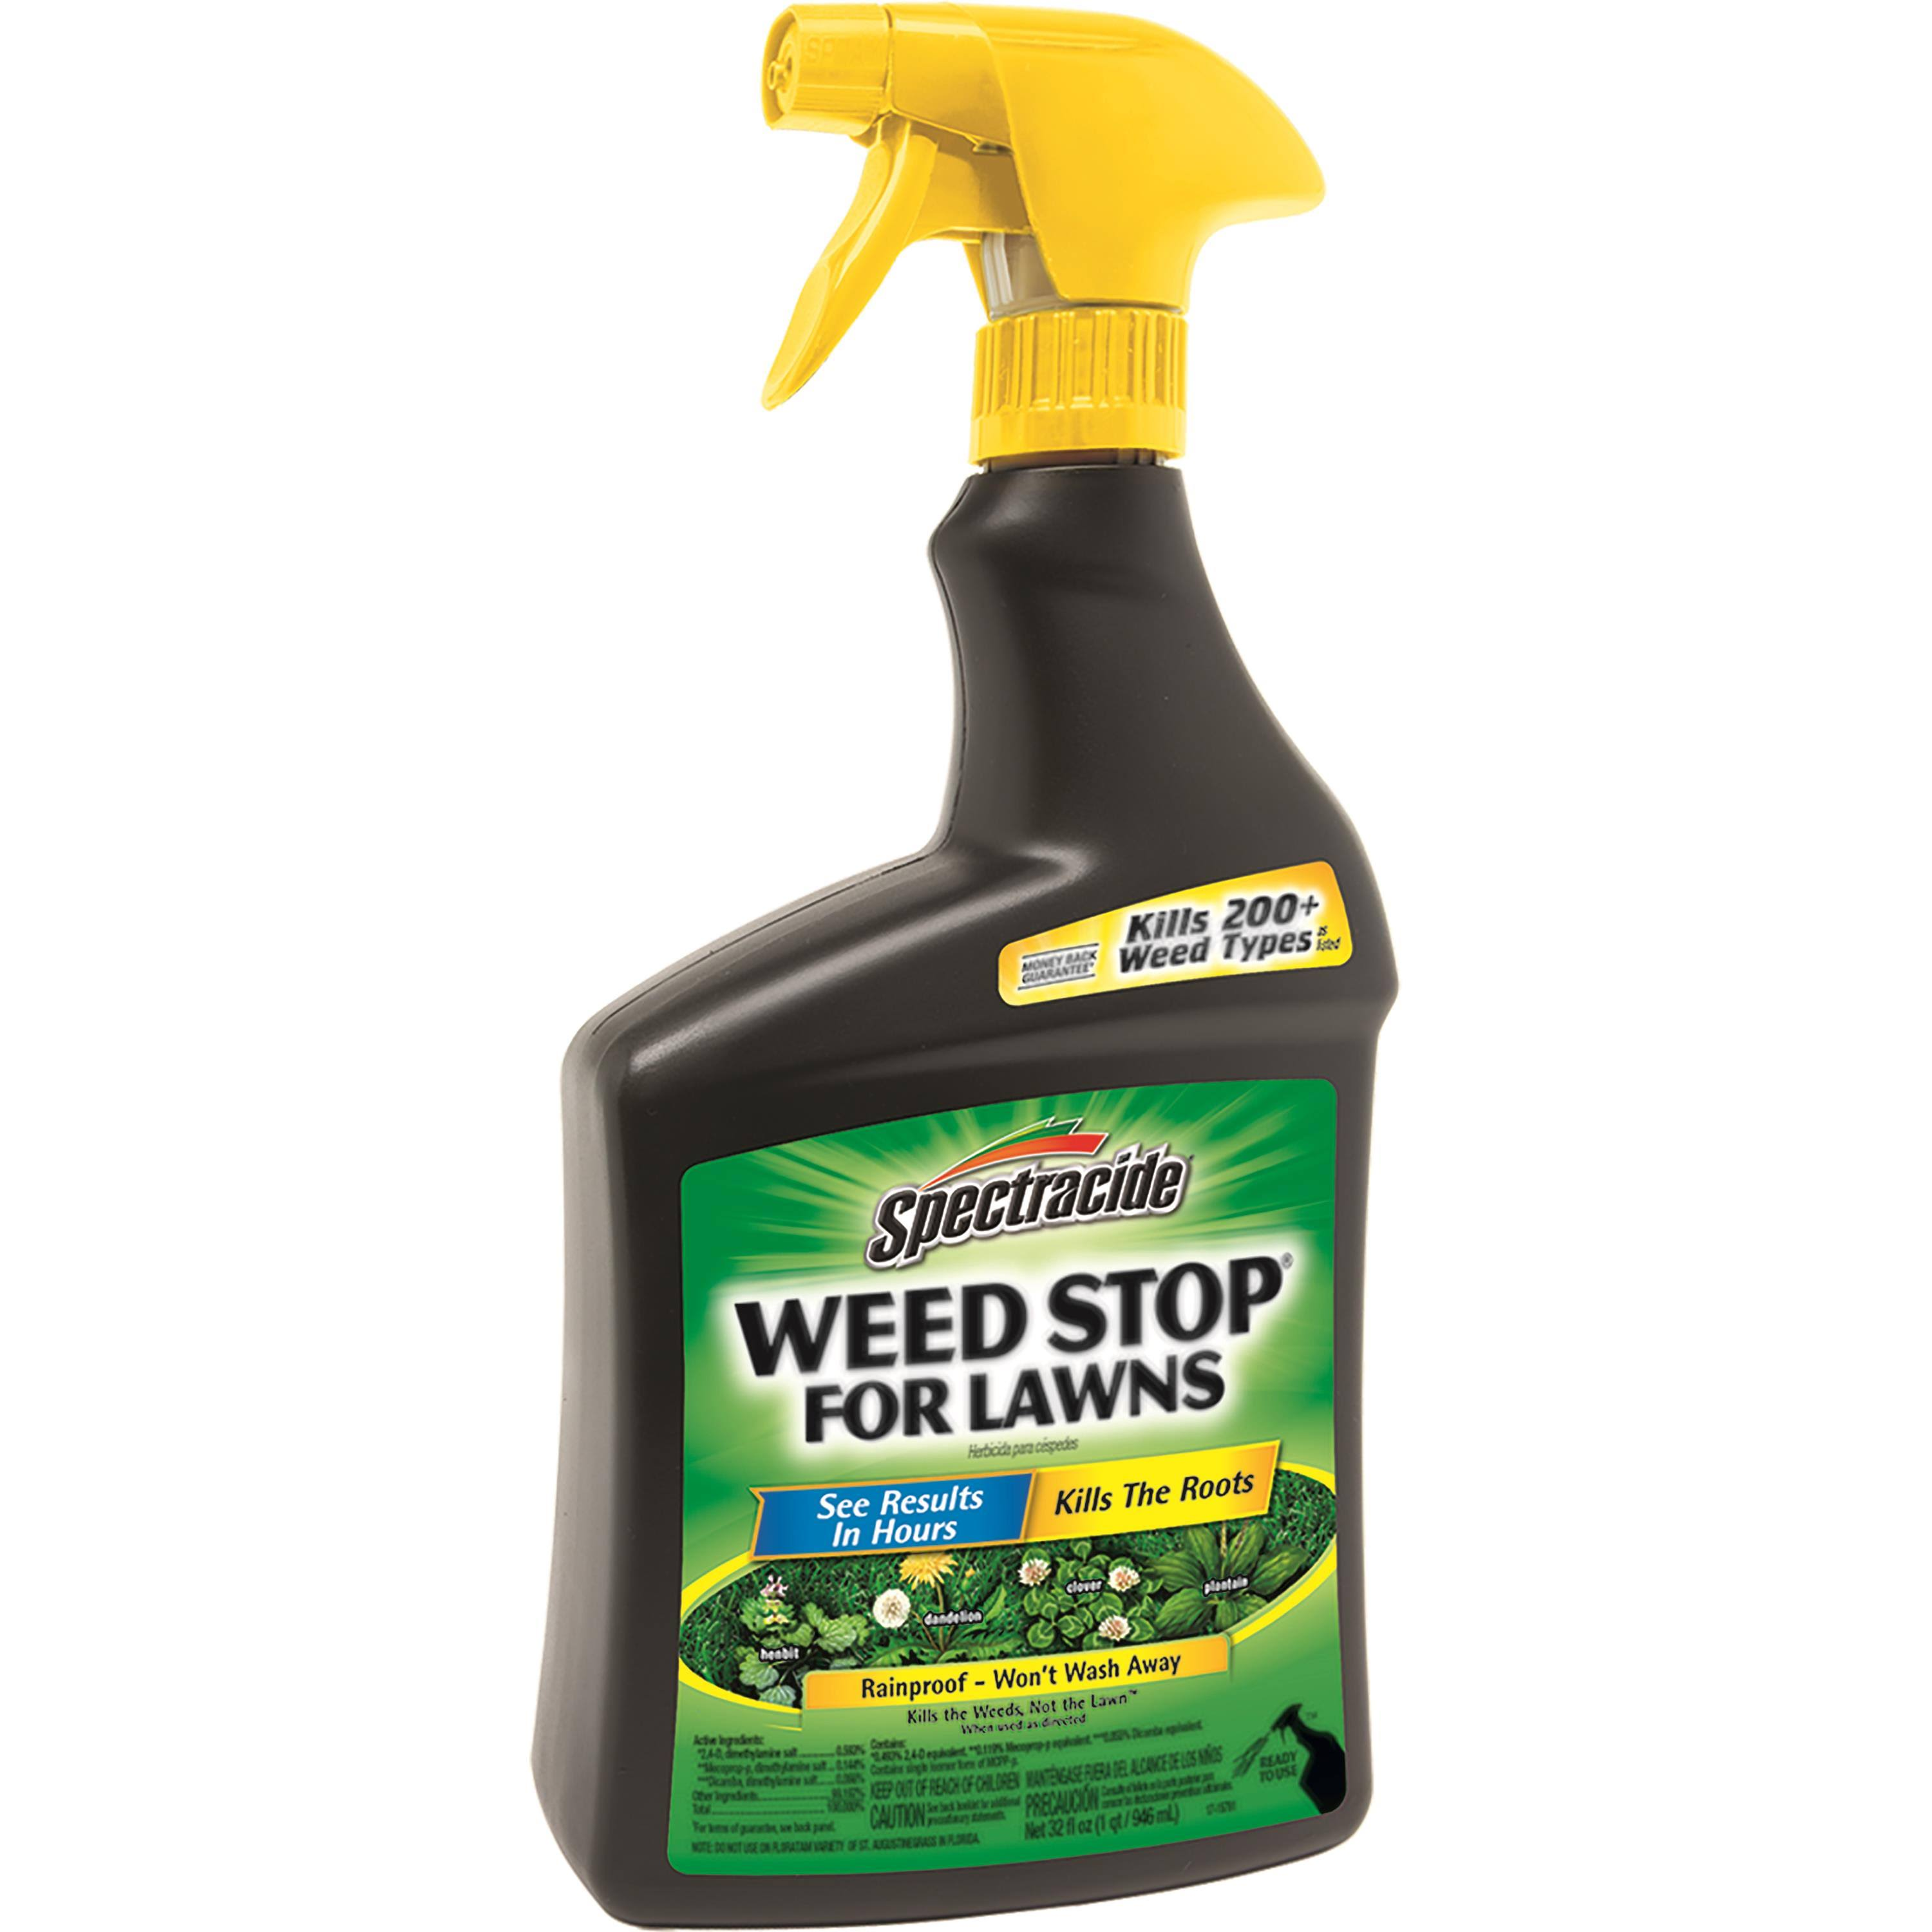 Spectracide Ready-to-Use Weed Stop for Lawns - 32oz